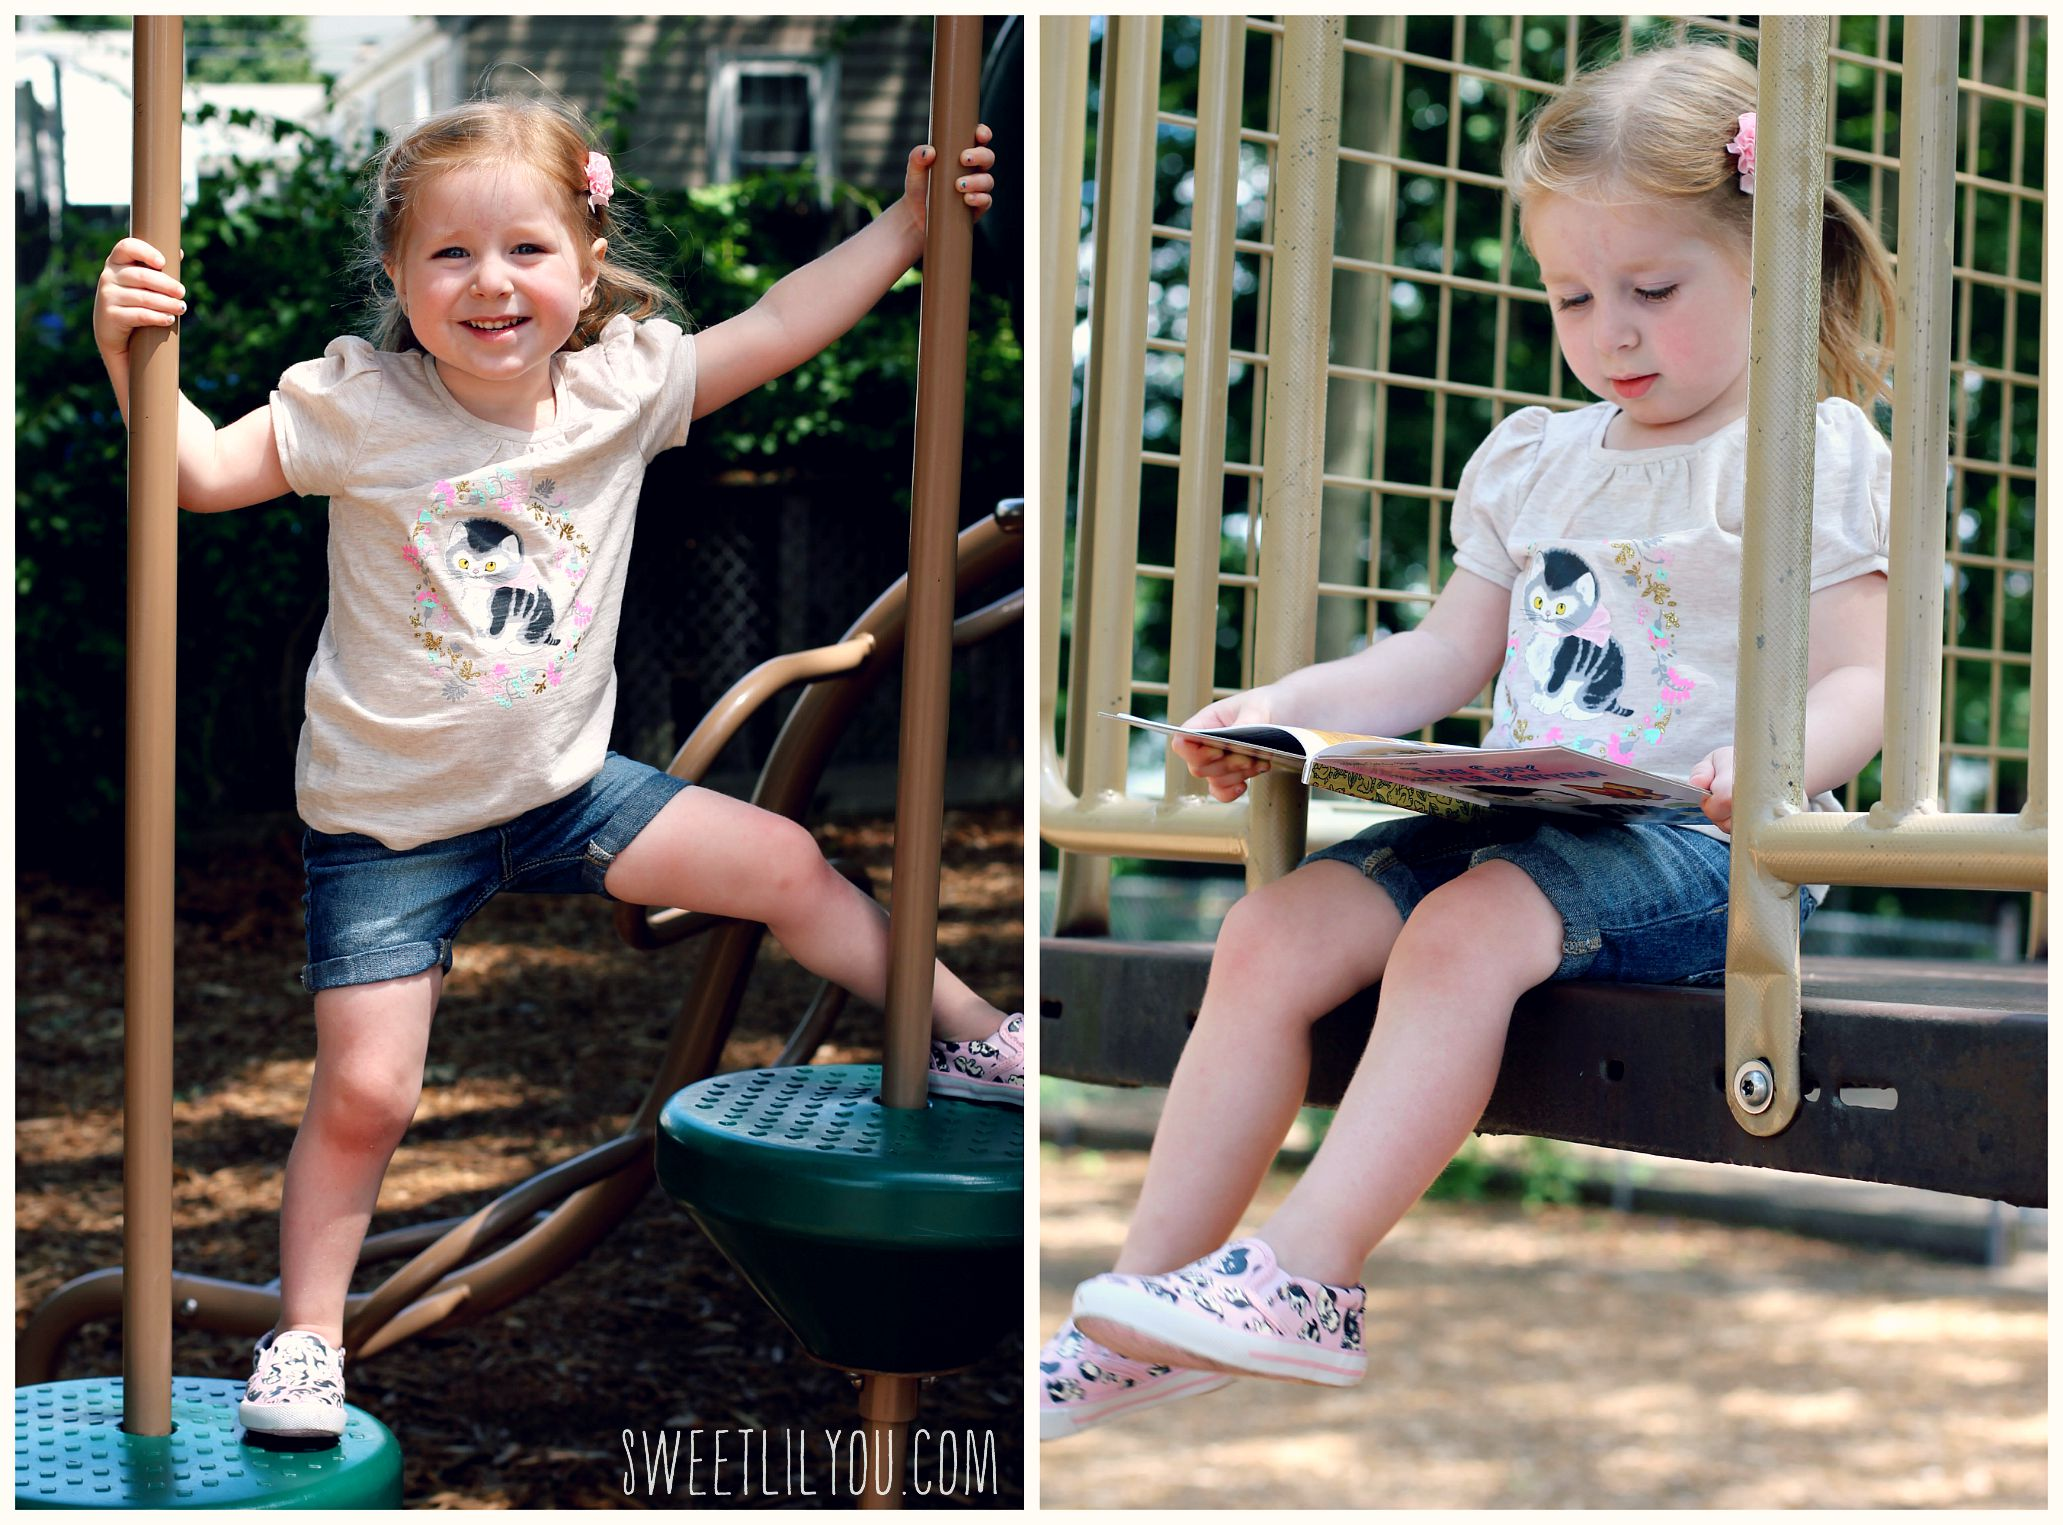 0a96d5da6 These pieces are perfect for Back to School! A pretty dress for the first  day or any special occasion, tees for play-dates and playground fun, ...